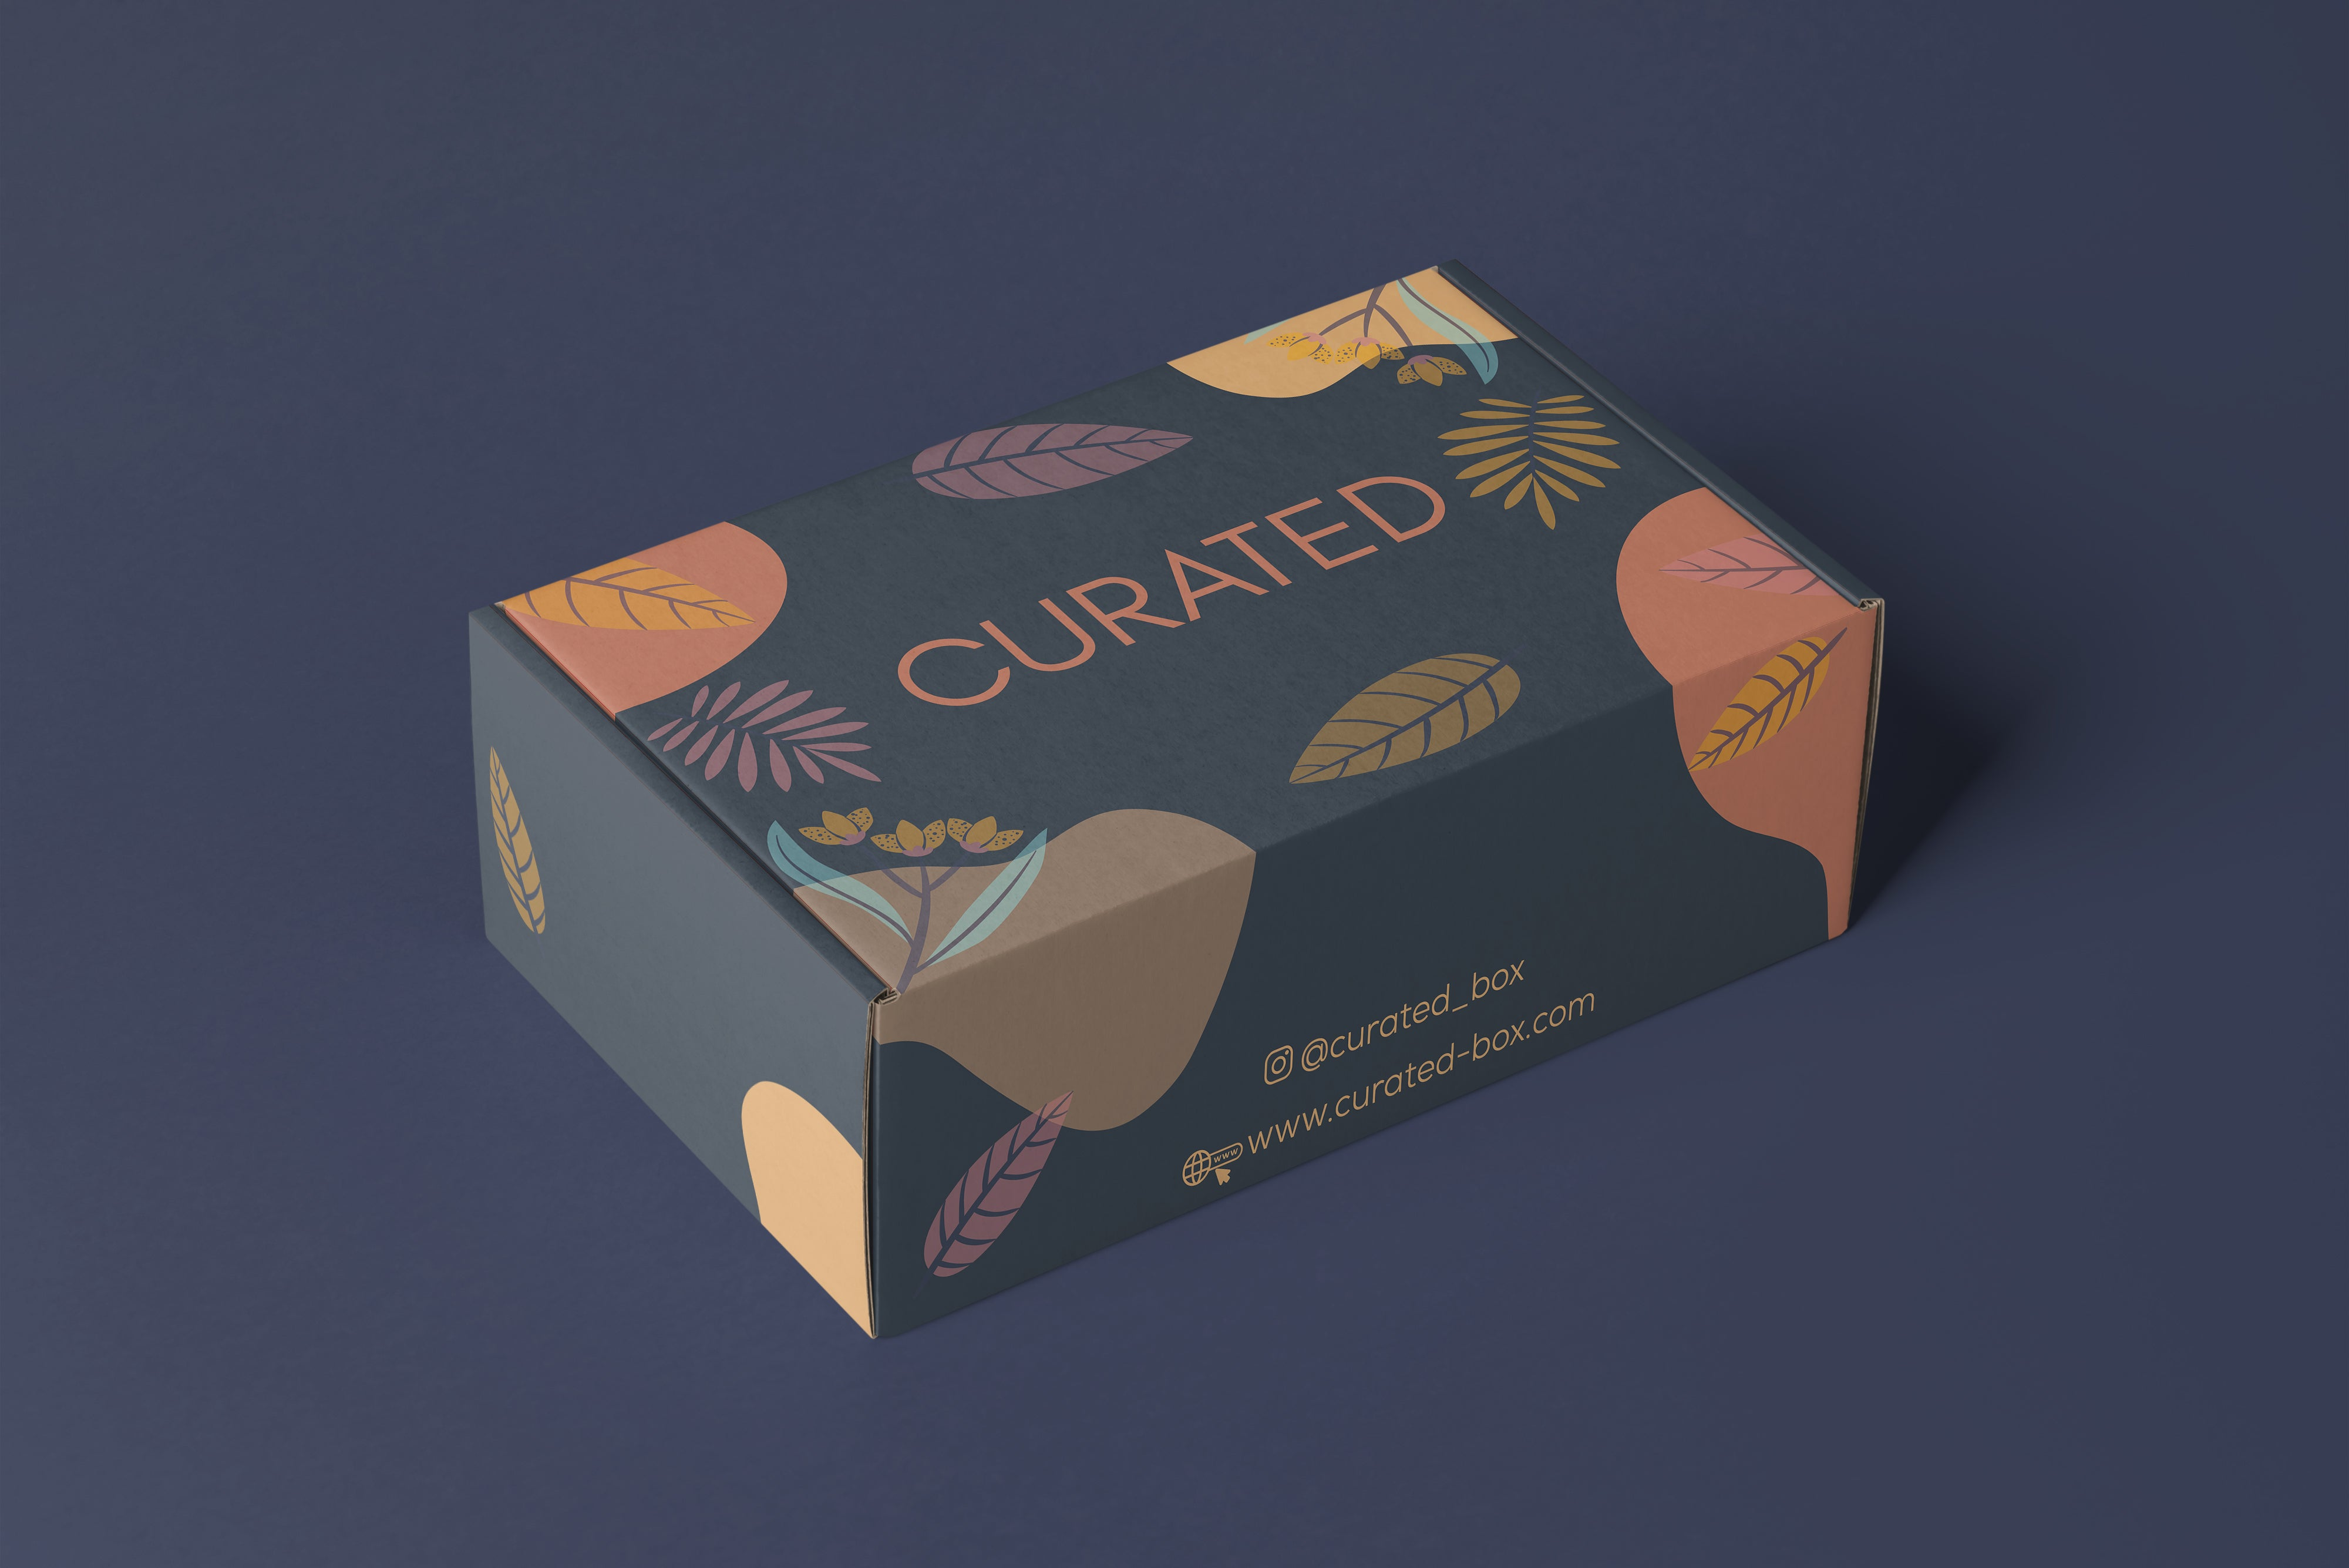 Cutared - Box the world in a box delivered to your door